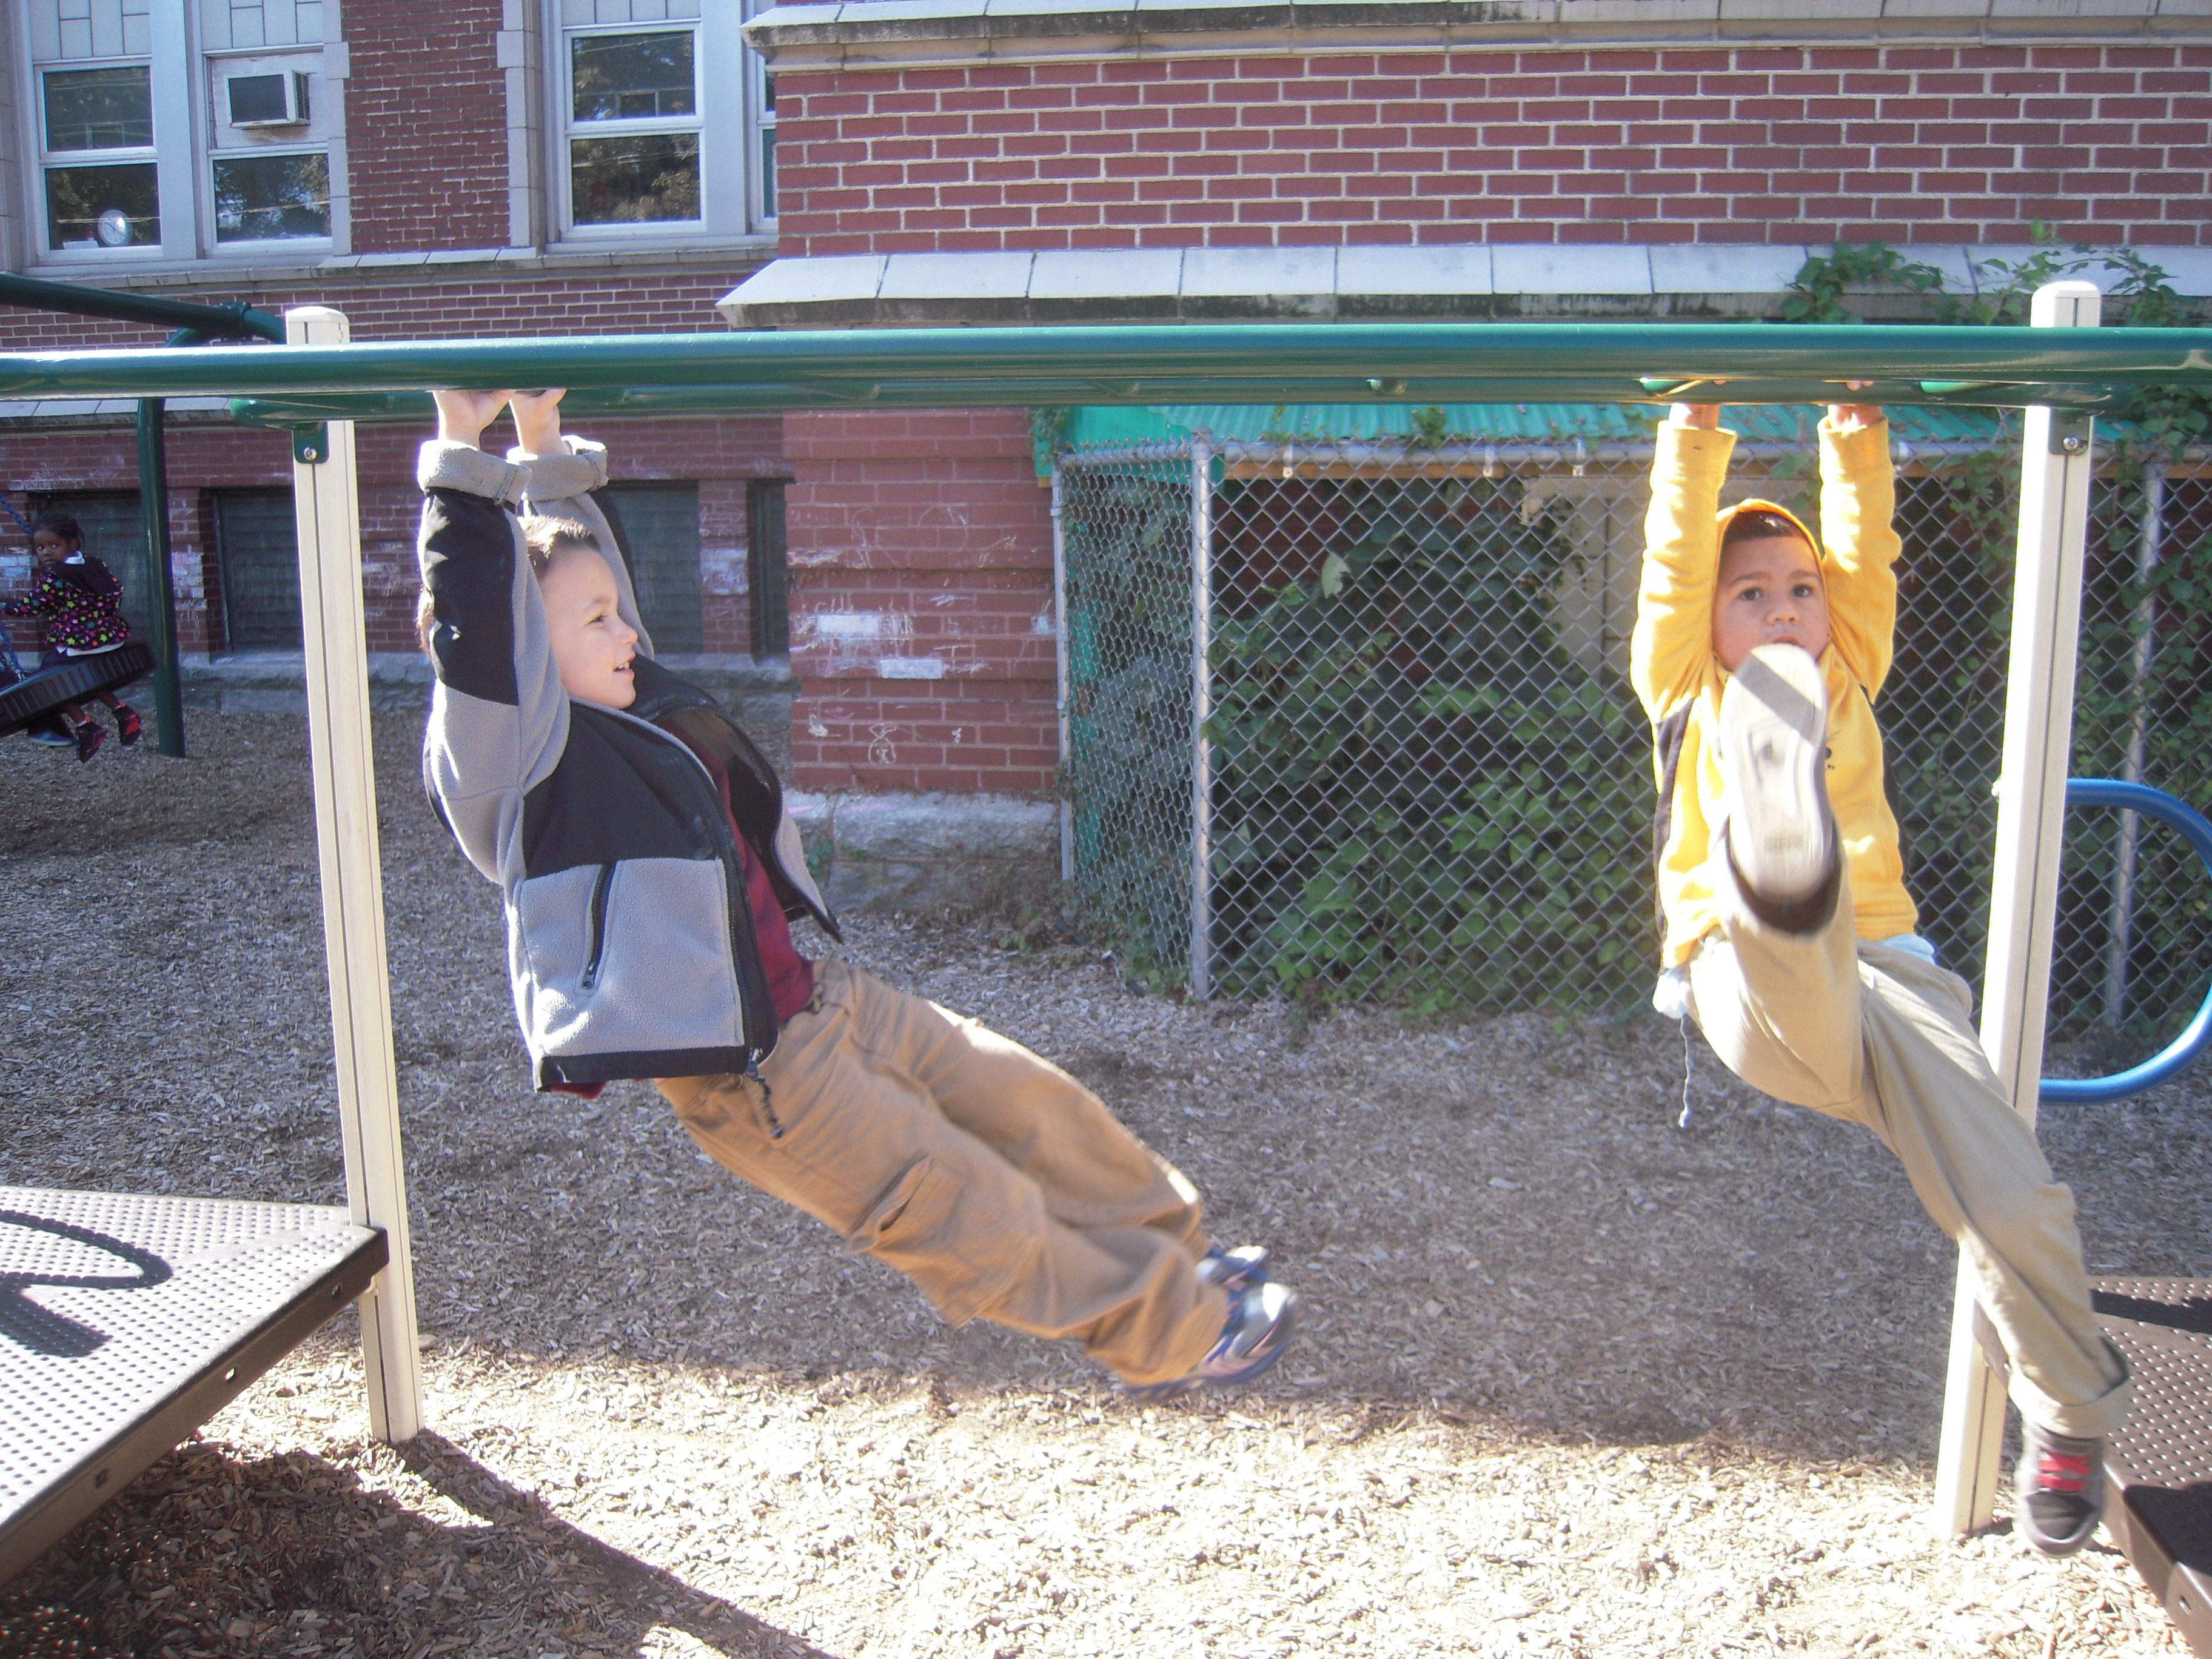 Two young students on playground equipment together